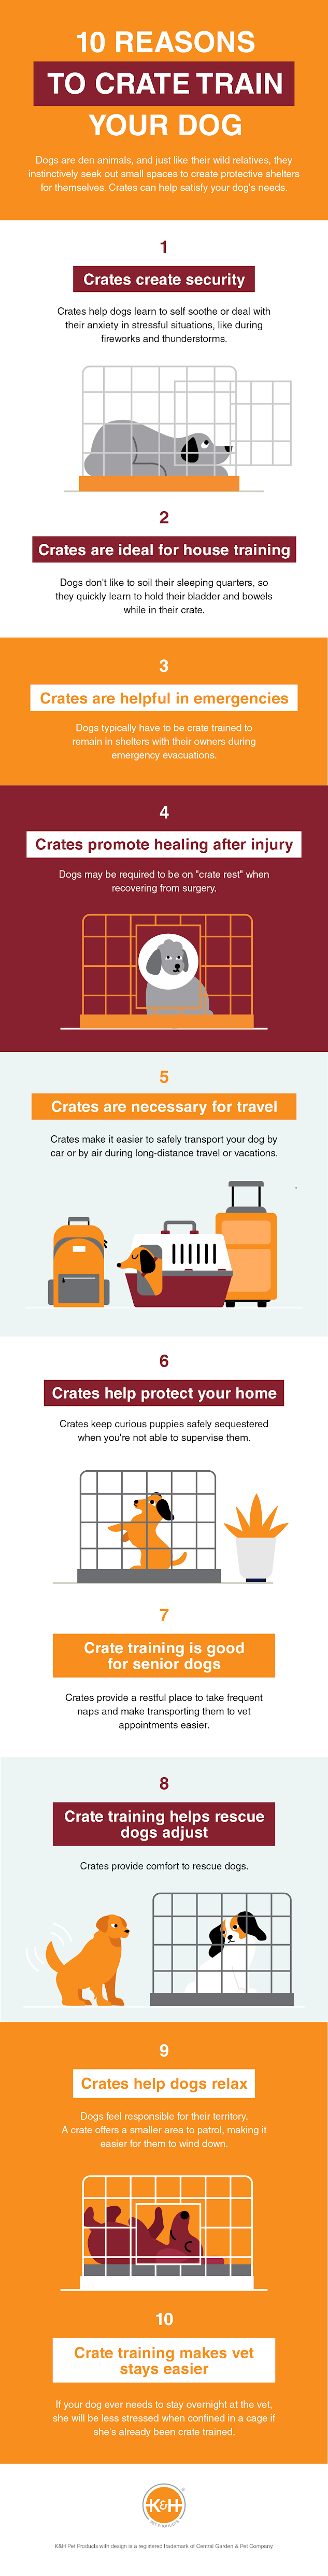 10 Reasons to Crate Train Your Dog #infographic #Dog Training #pets & Animal #Dogs #Puppies